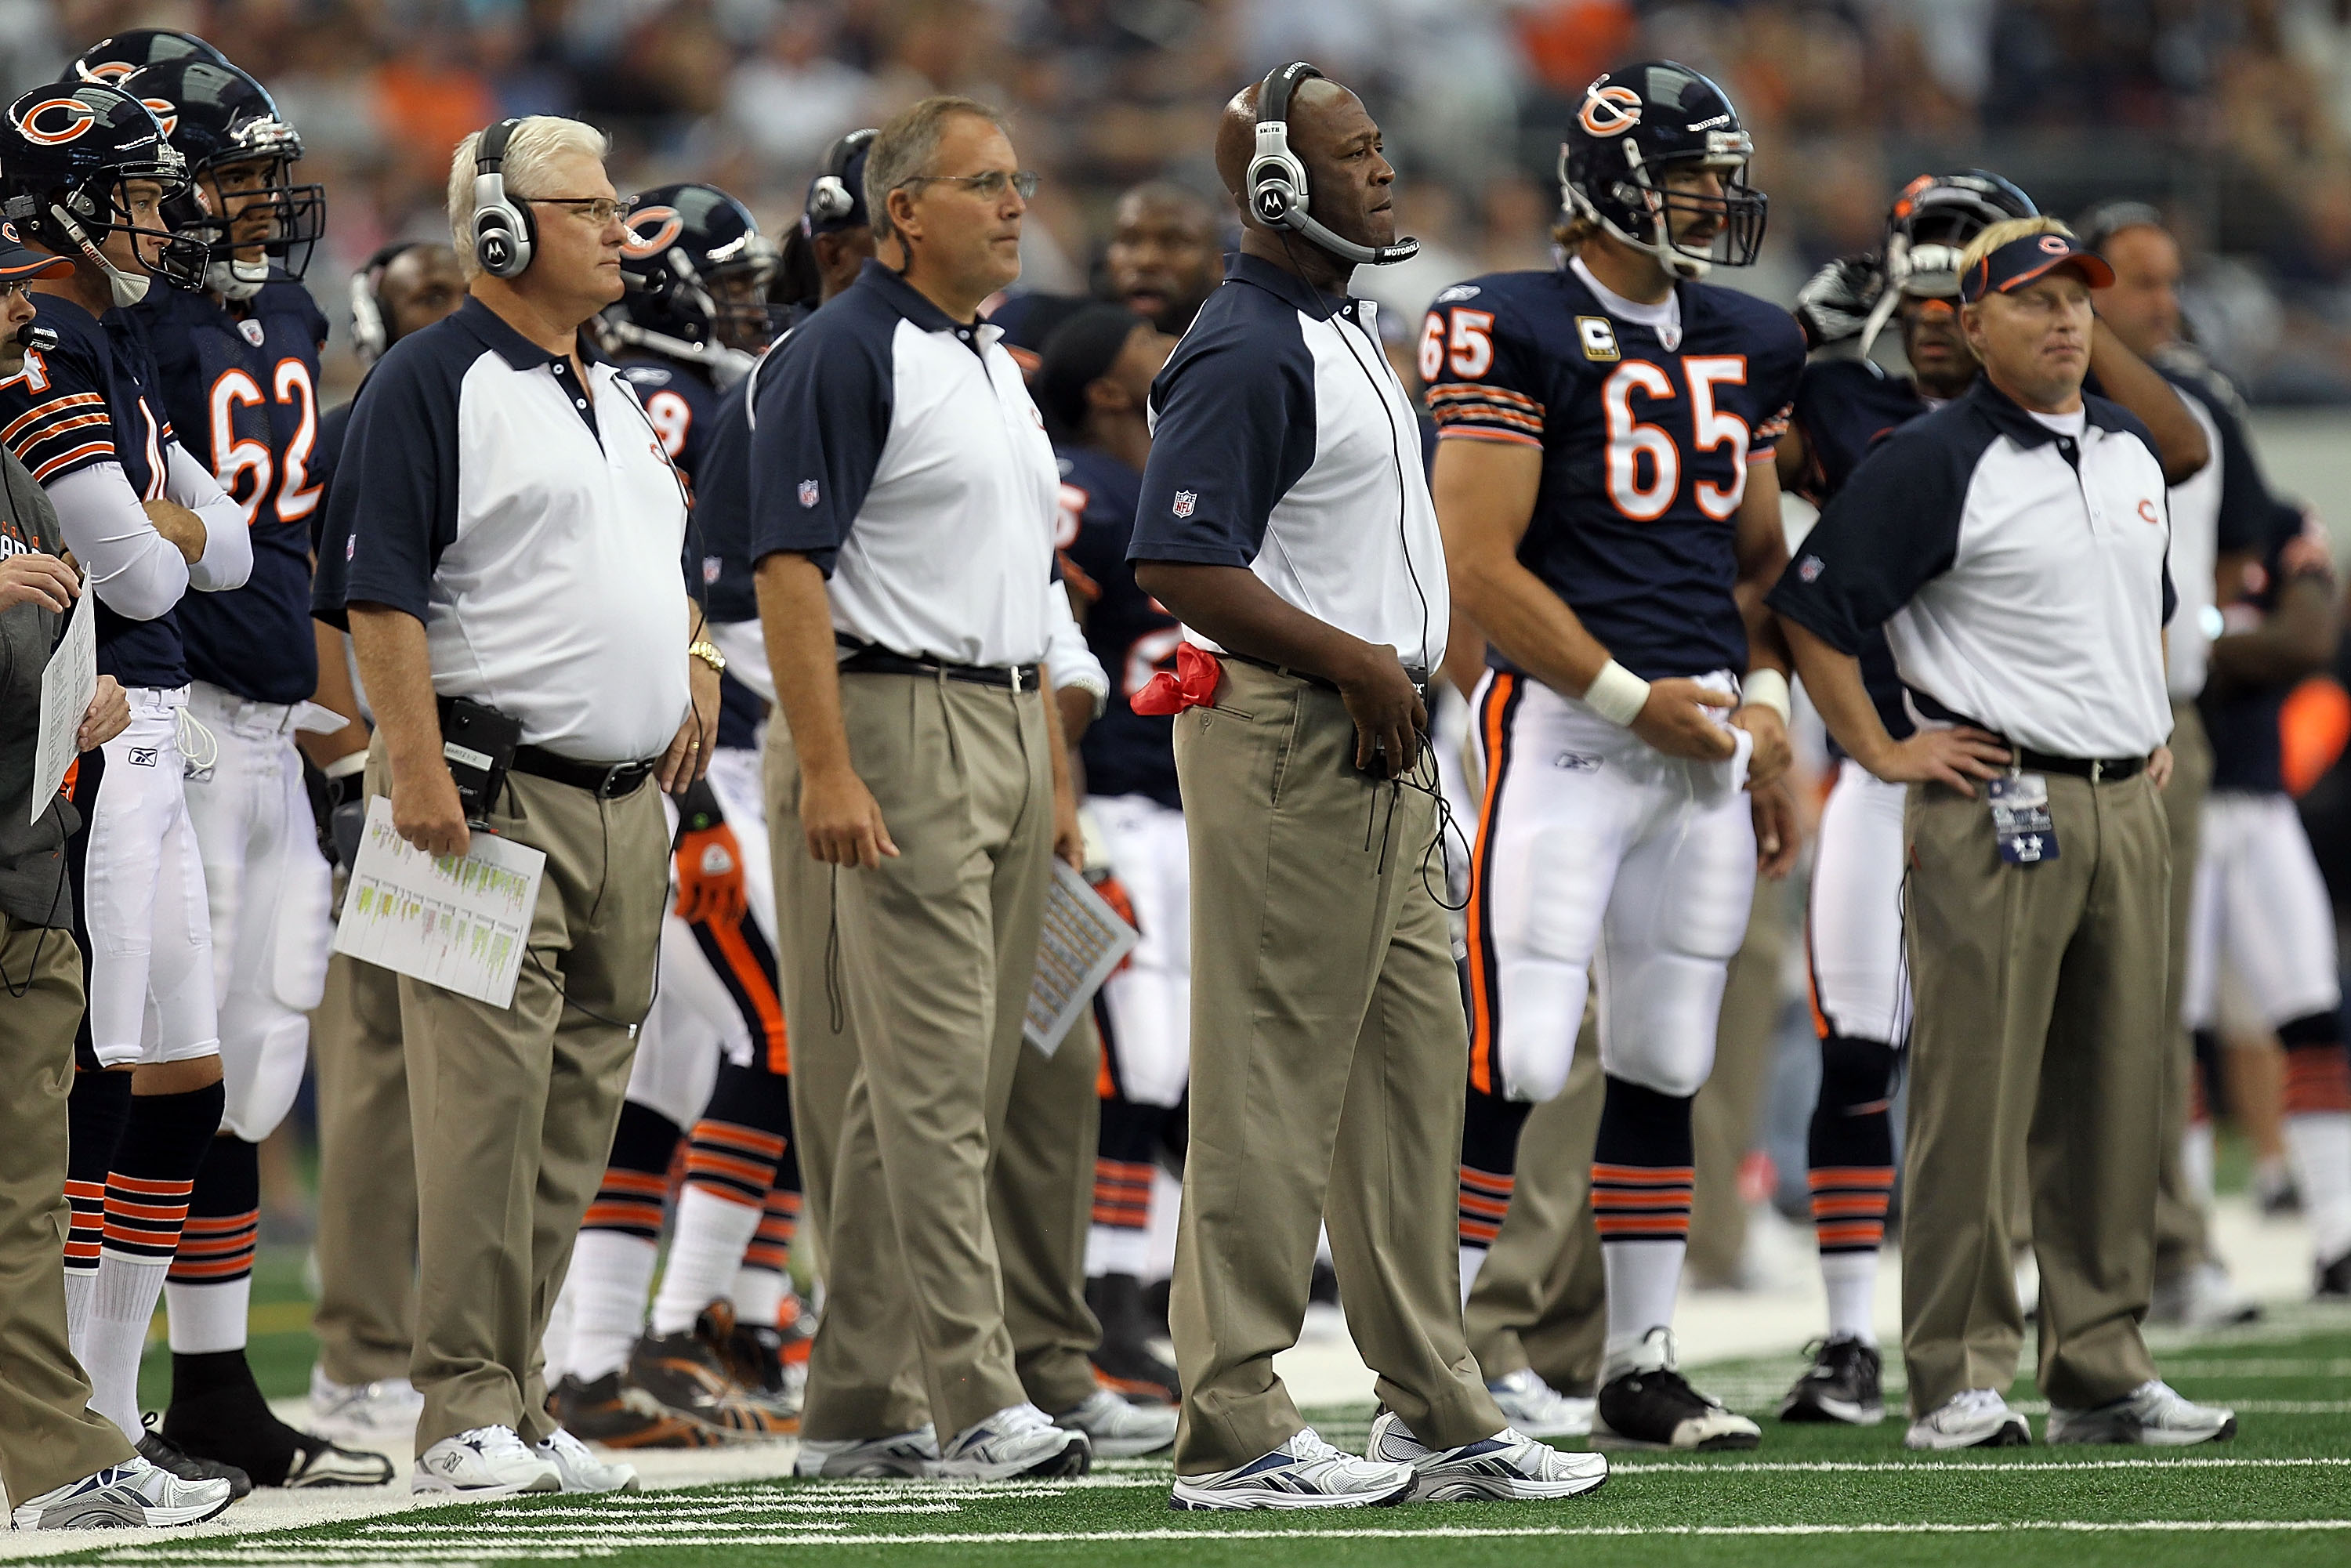 ARLINGTON, TX - SEPTEMBER 19:  Head coach Lovie Smith of the Chicago Bears during play against the Dallas Cowboys at Cowboys Stadium on September 19, 2010 in Arlington, Texas.  (Photo by Ronald Martinez/Getty Images)